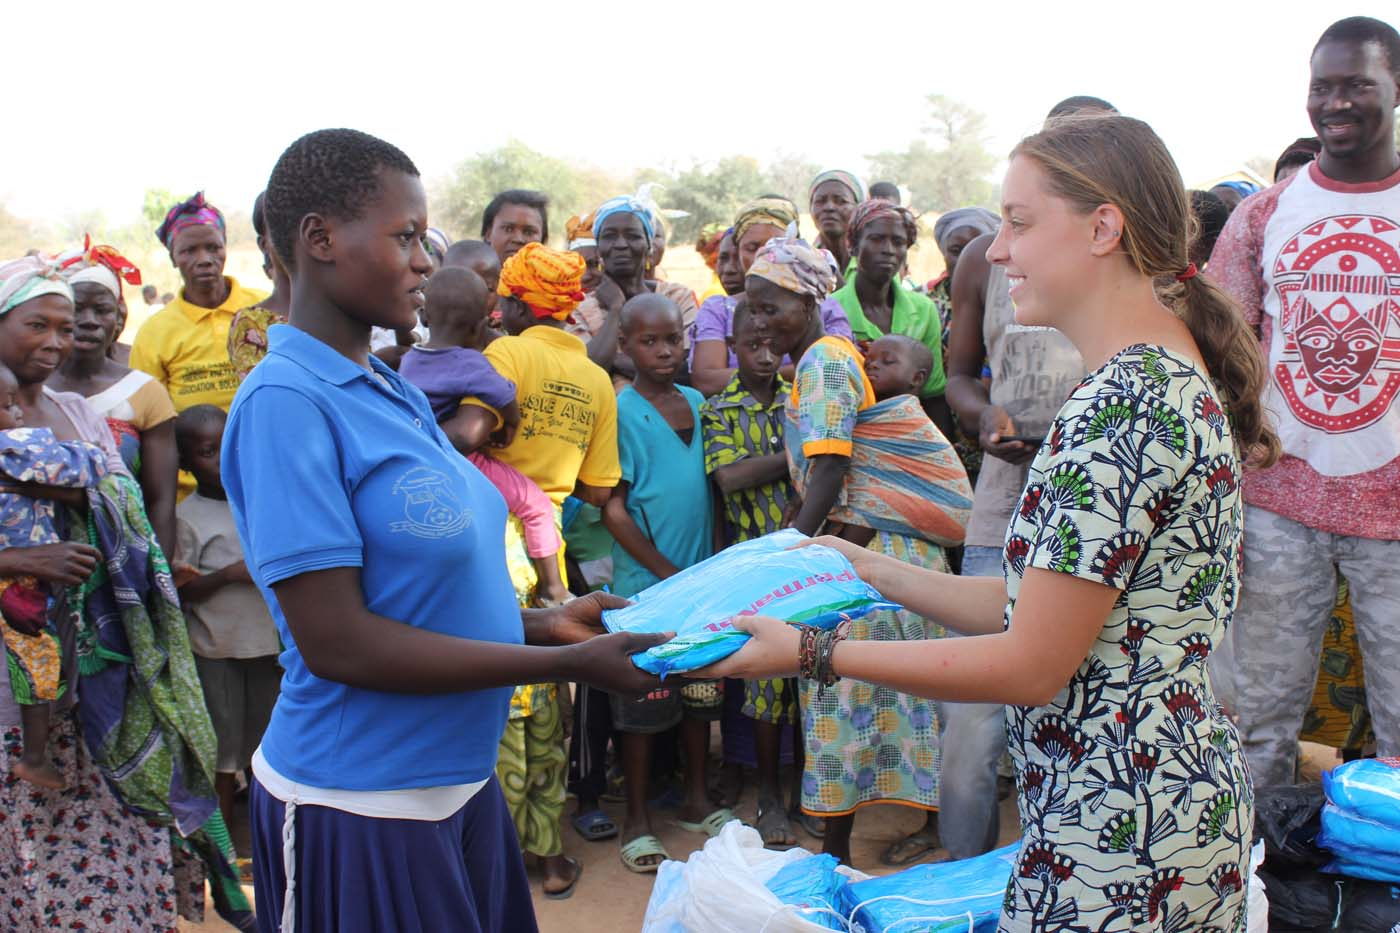 Our Peace Corps volunteer handing out a mosquito net